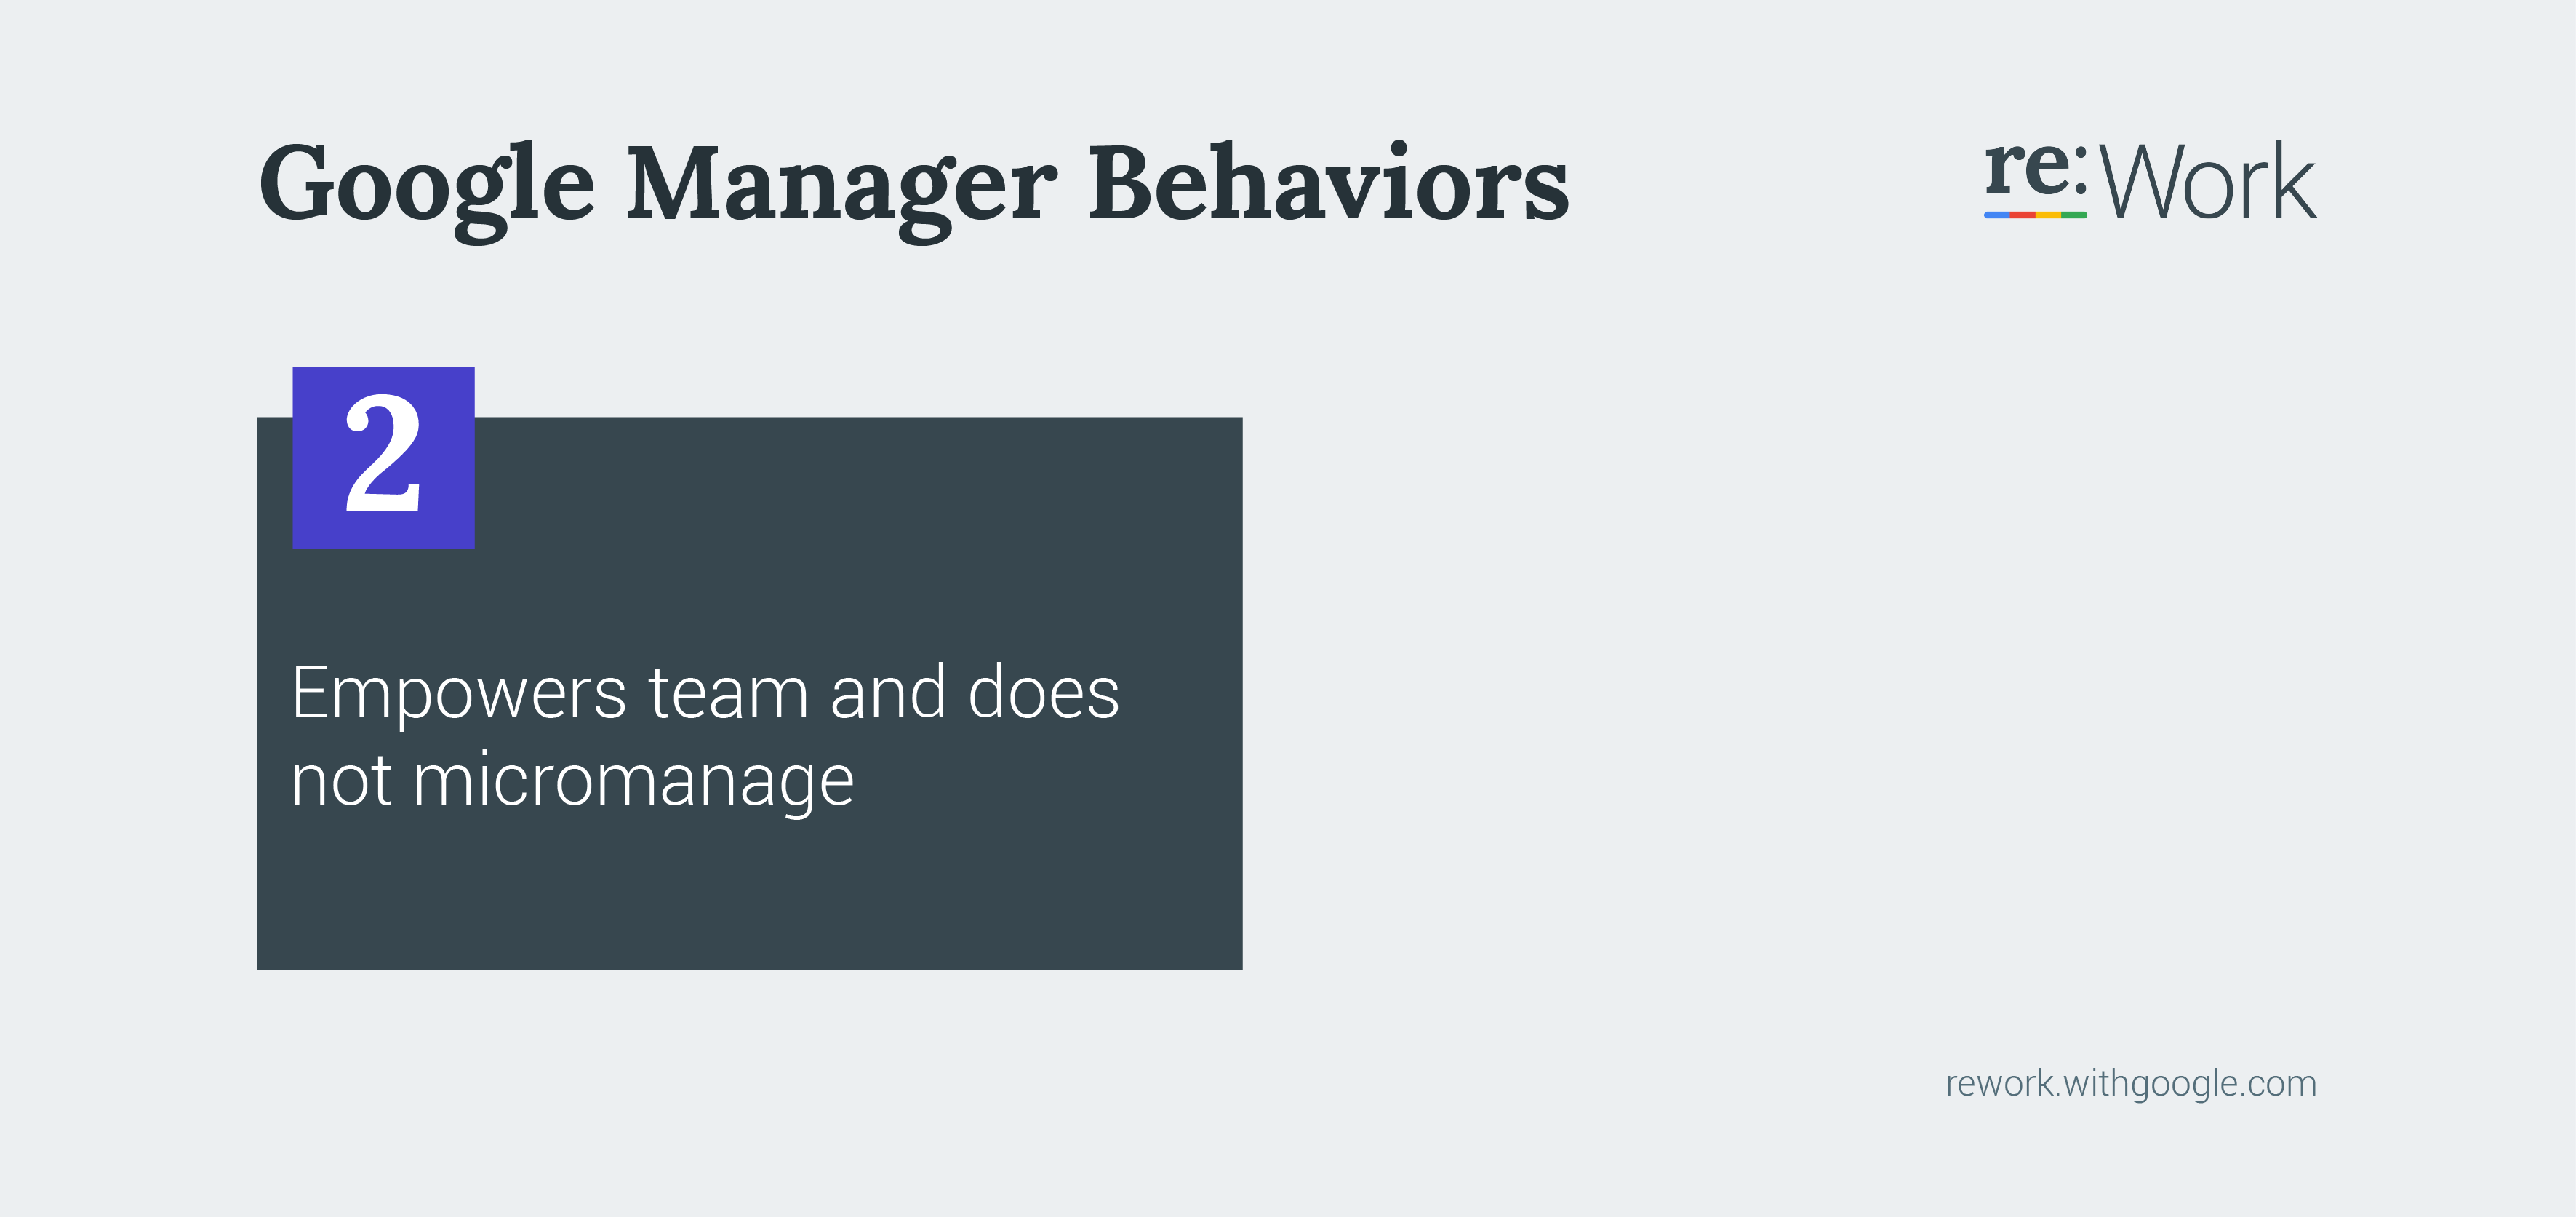 Google Manager Behavior 2 Empowers team and does not micromanage.